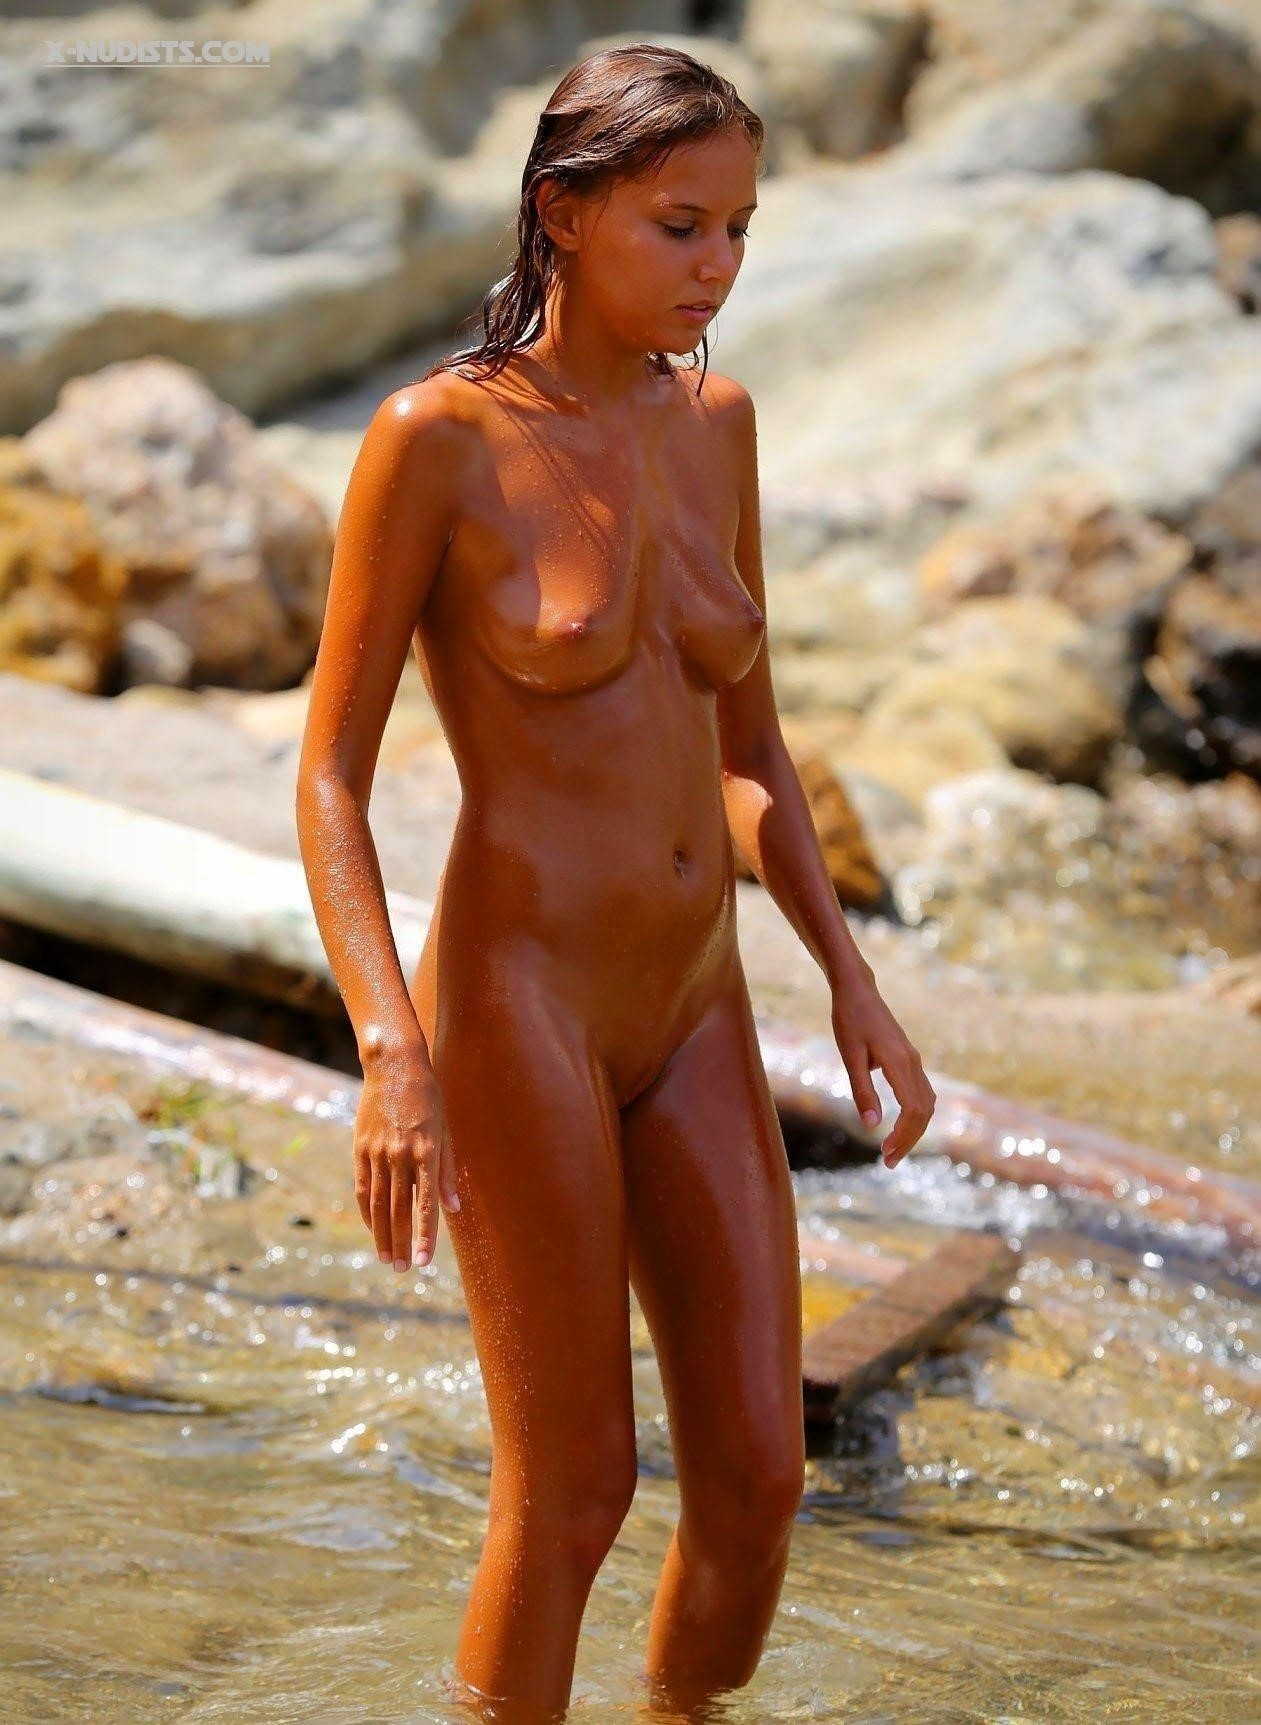 Naturist Leaves Rochelle Humes Looking In The Wrong Direction